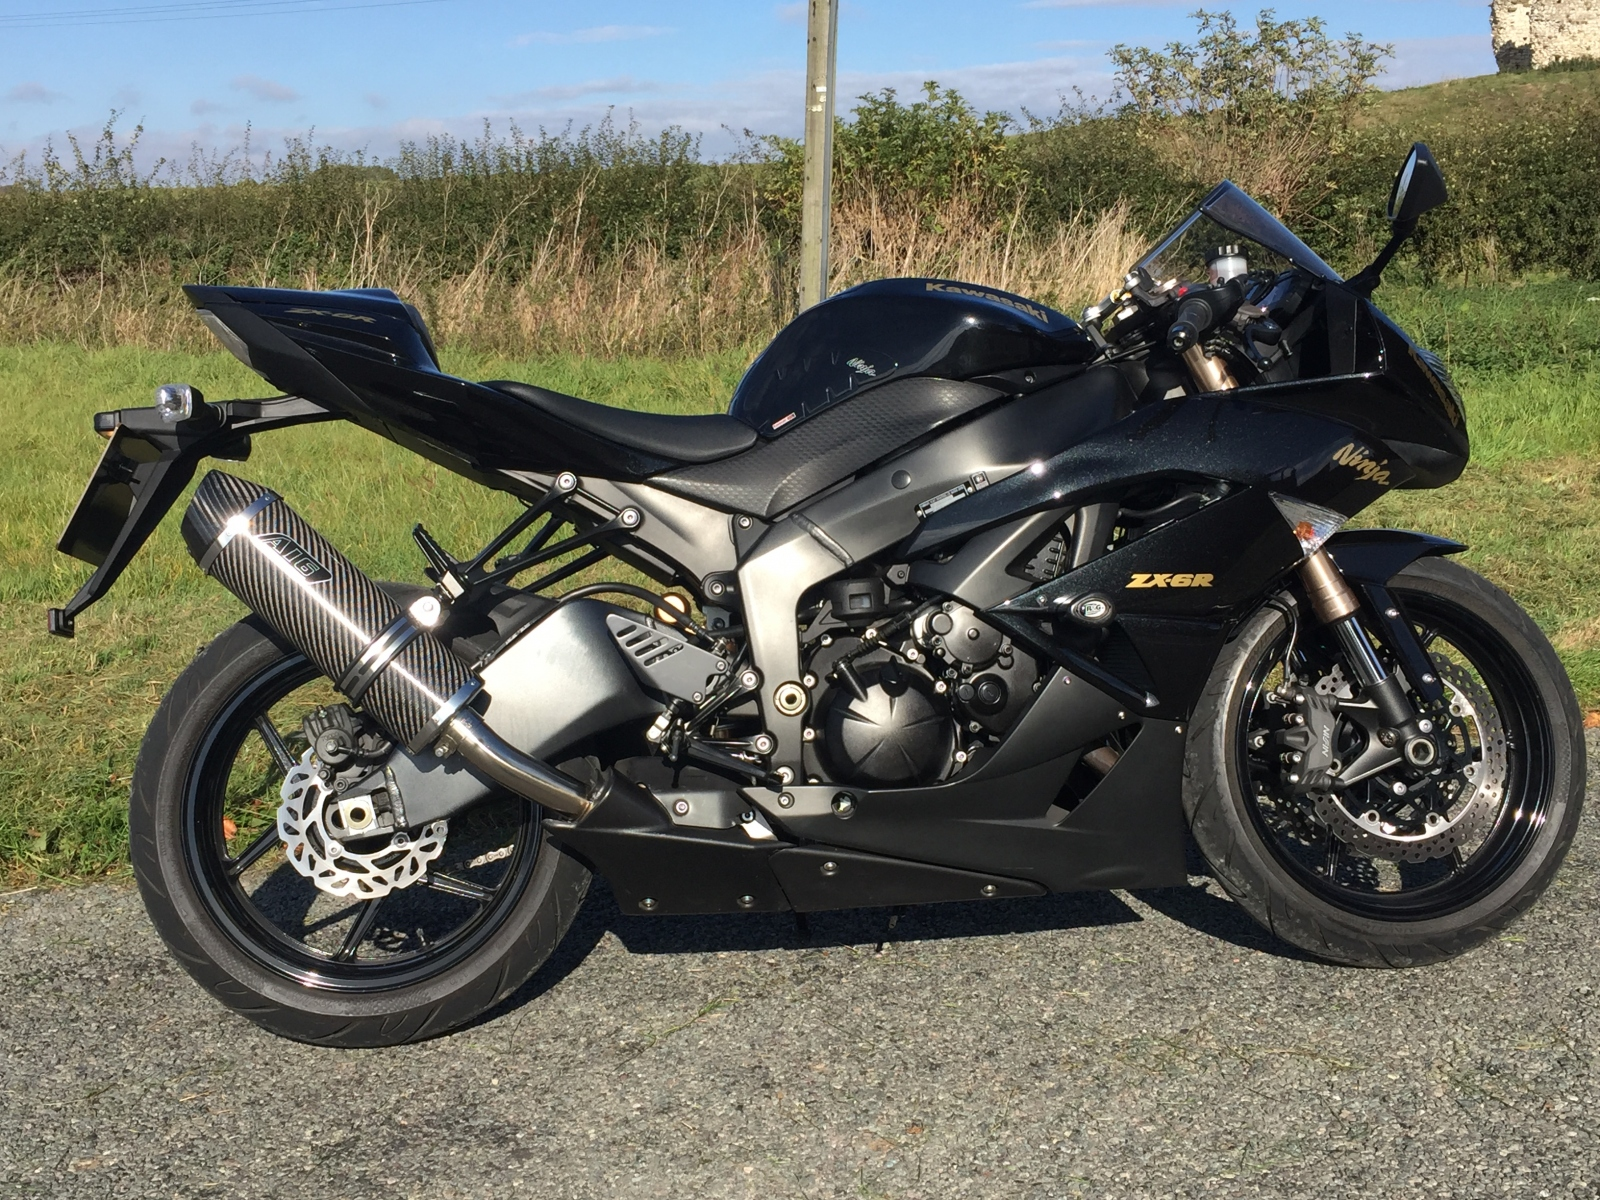 """Kawasaki ZX-6R 2009-2018 <p>A16 Carbon Road Legal Exhaust with Carbon Cap Outlet</p><br><a href=""""https://a16roadnracesupplies.co.uk/product/a16-kawasaki-exhausts/"""">Click here to Spec your A16 Kawasaki Exhaust now!</a>"""